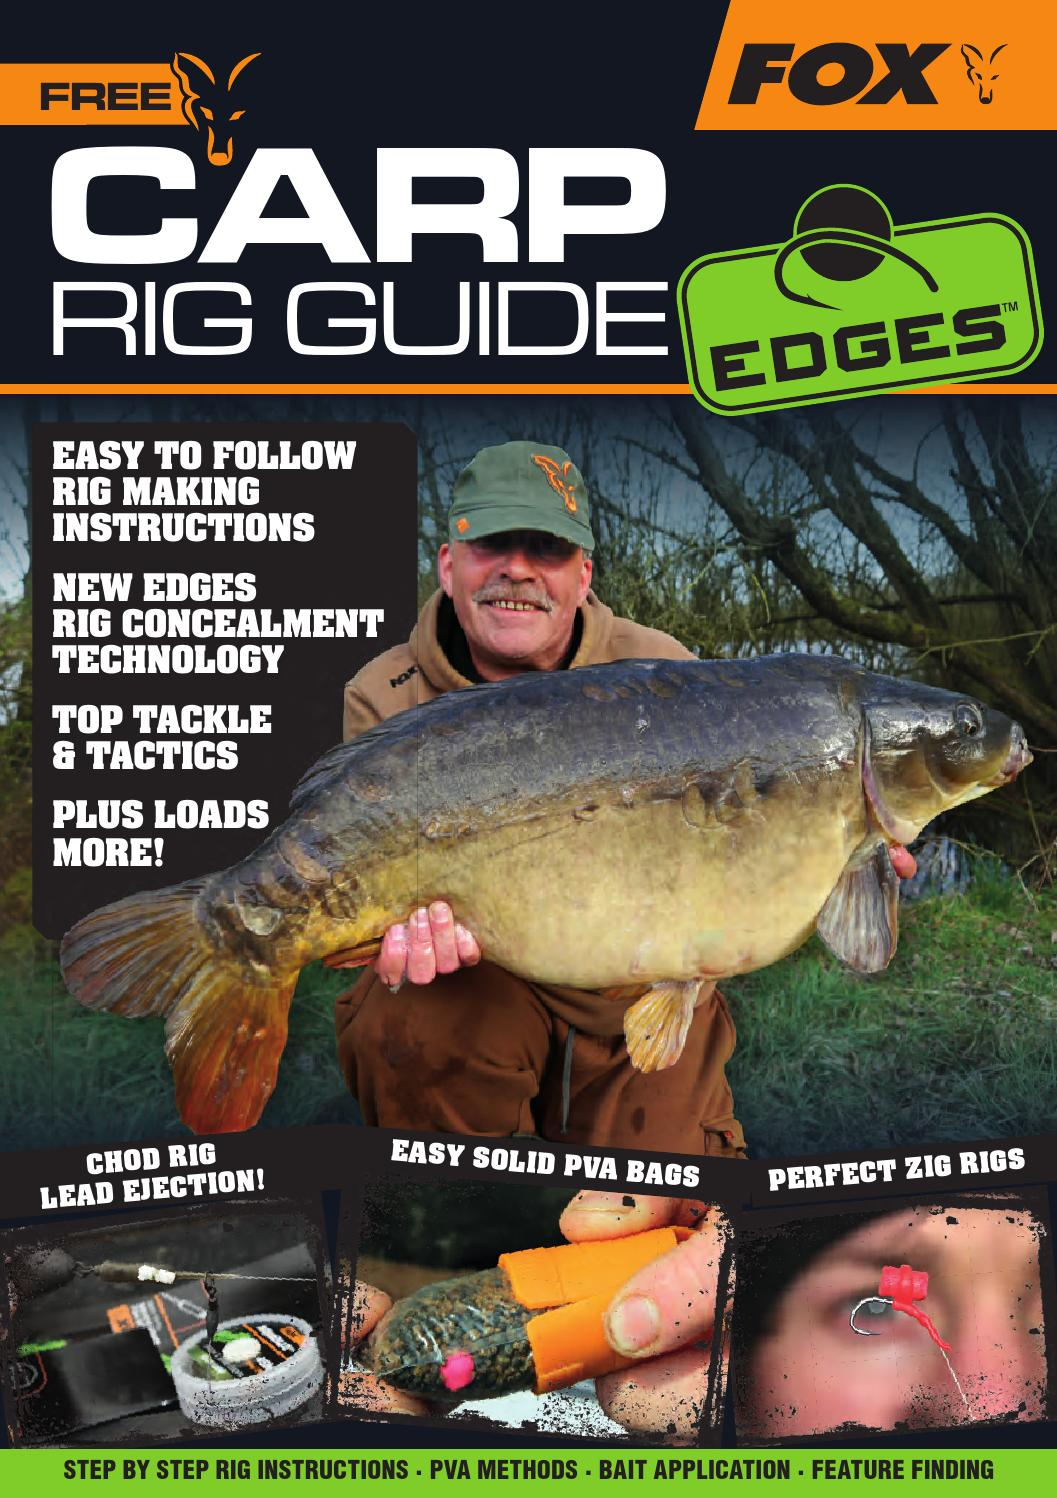 Fox carp rig guide by fox international limited issuu pooptronica Images